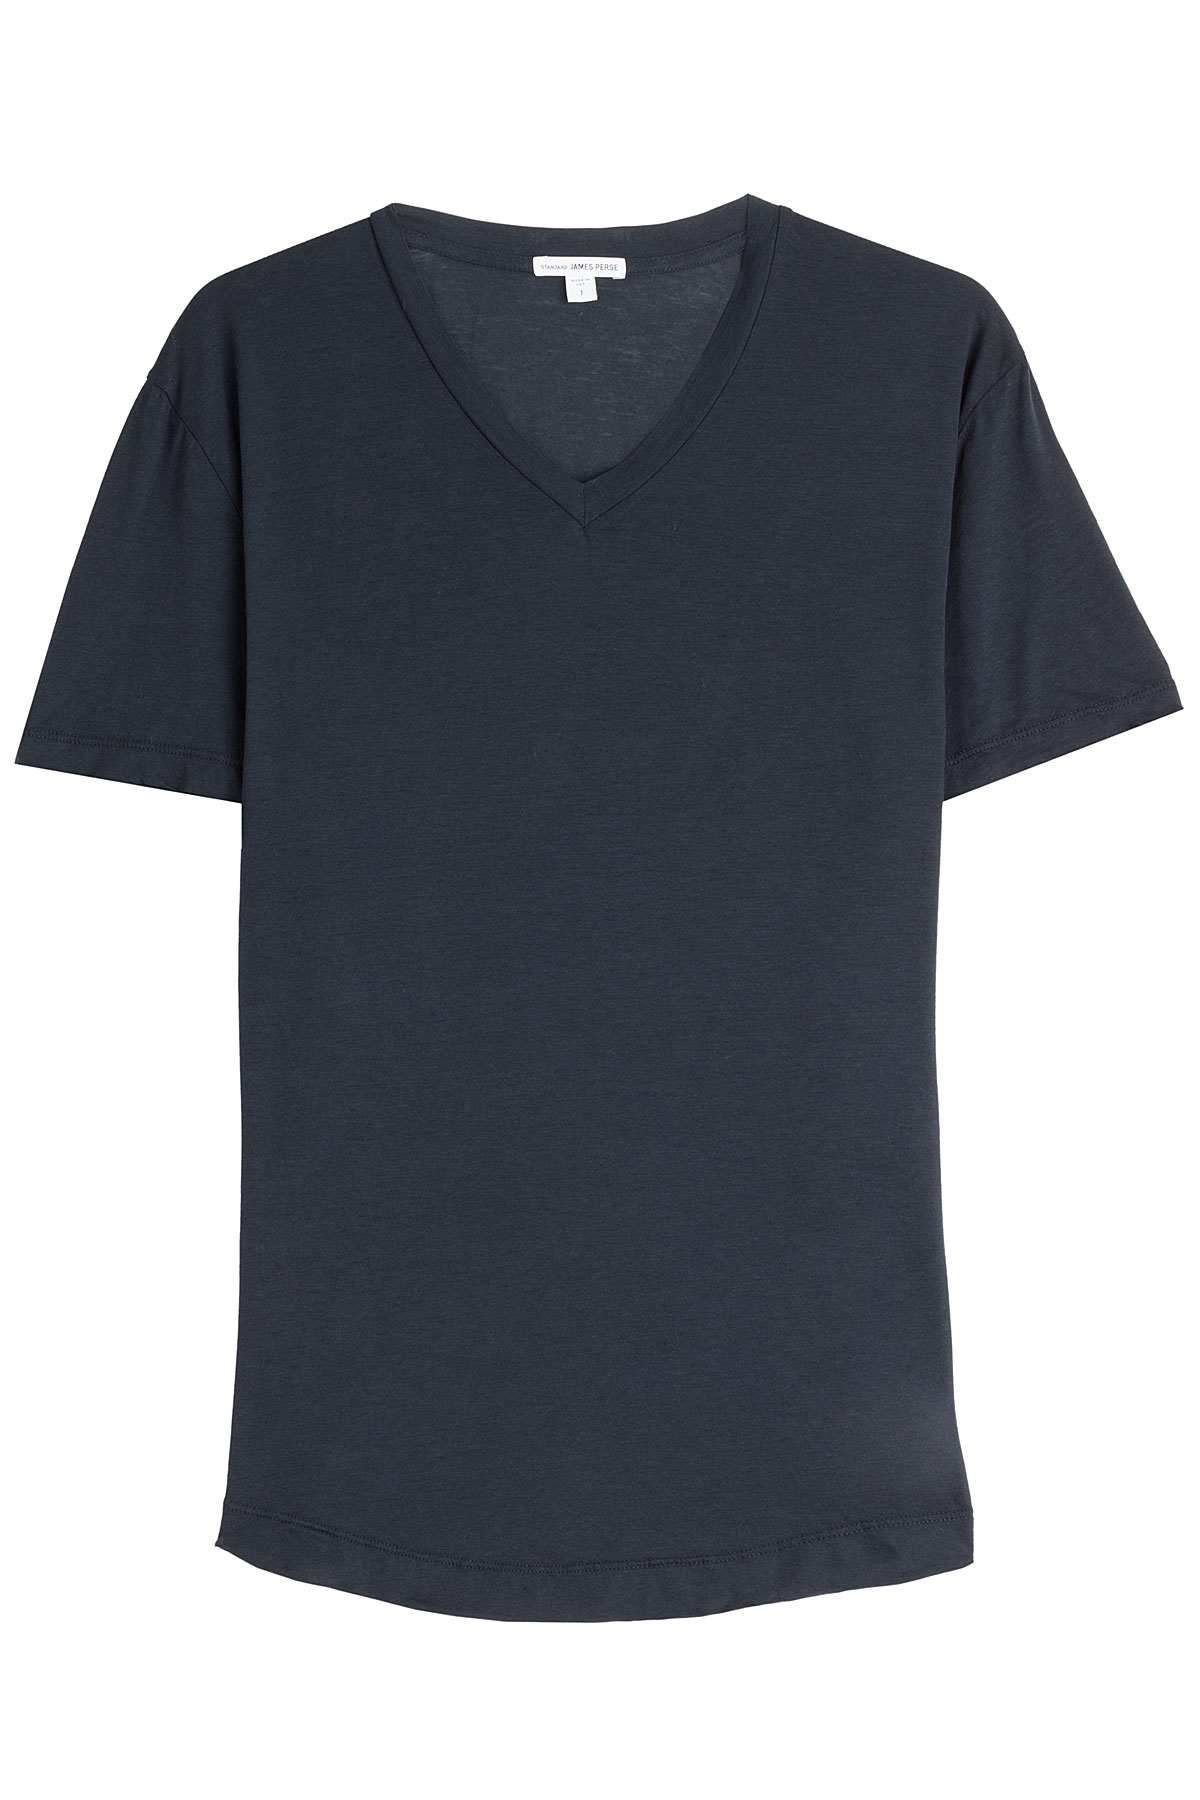 James perse cotton t shirt blue in blue for men lyst for James perse t shirts sale